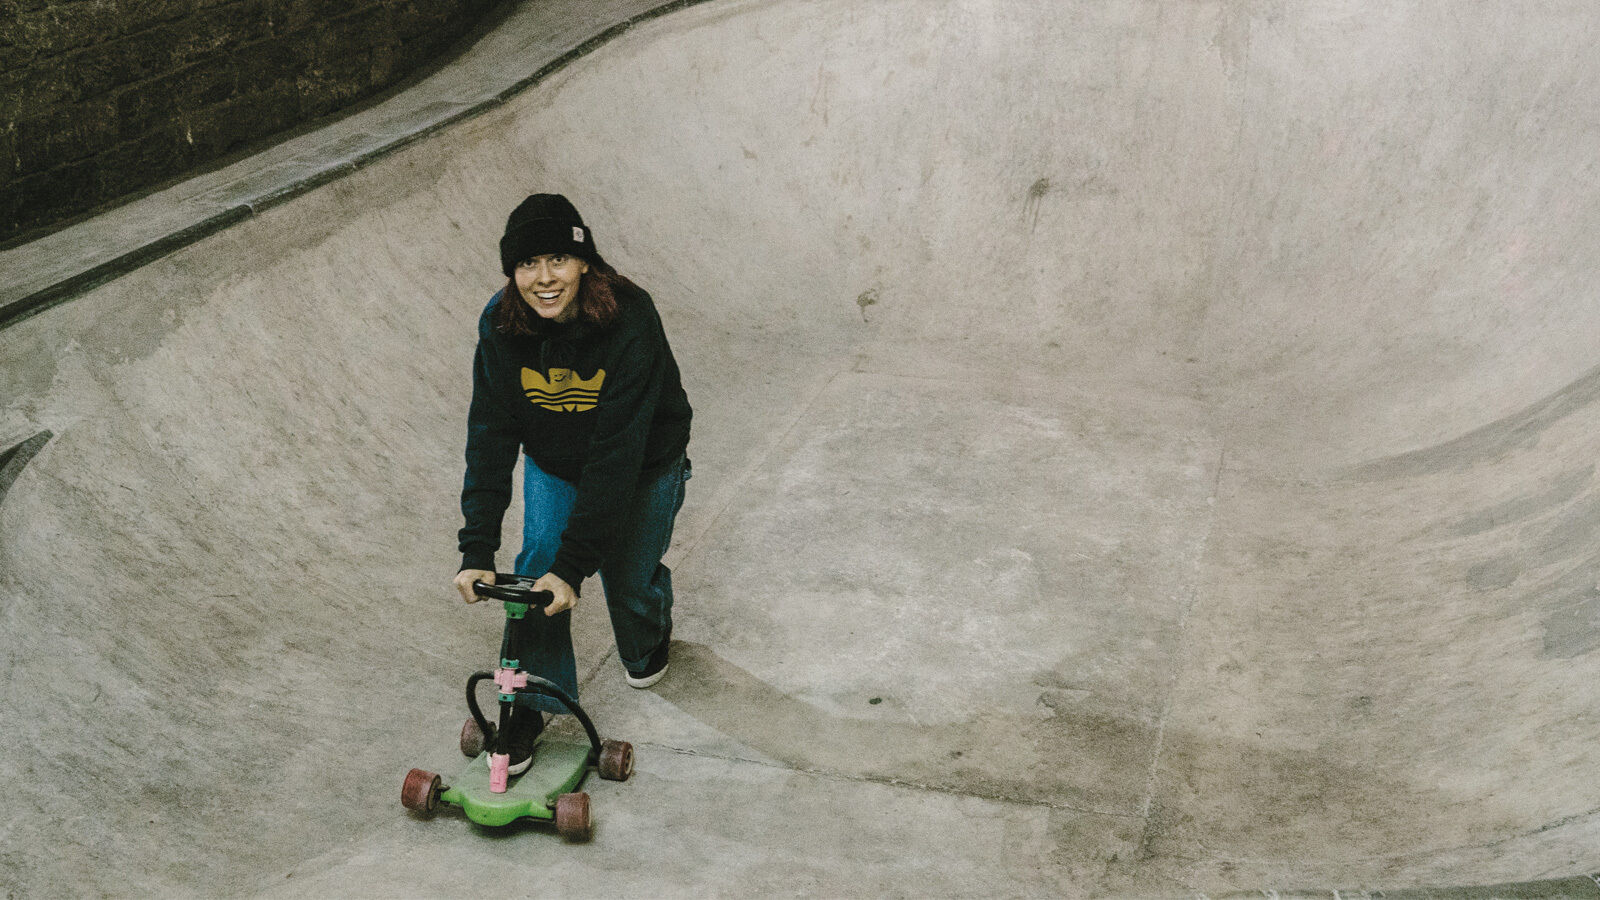 Soloskatemag Catherine Marquis